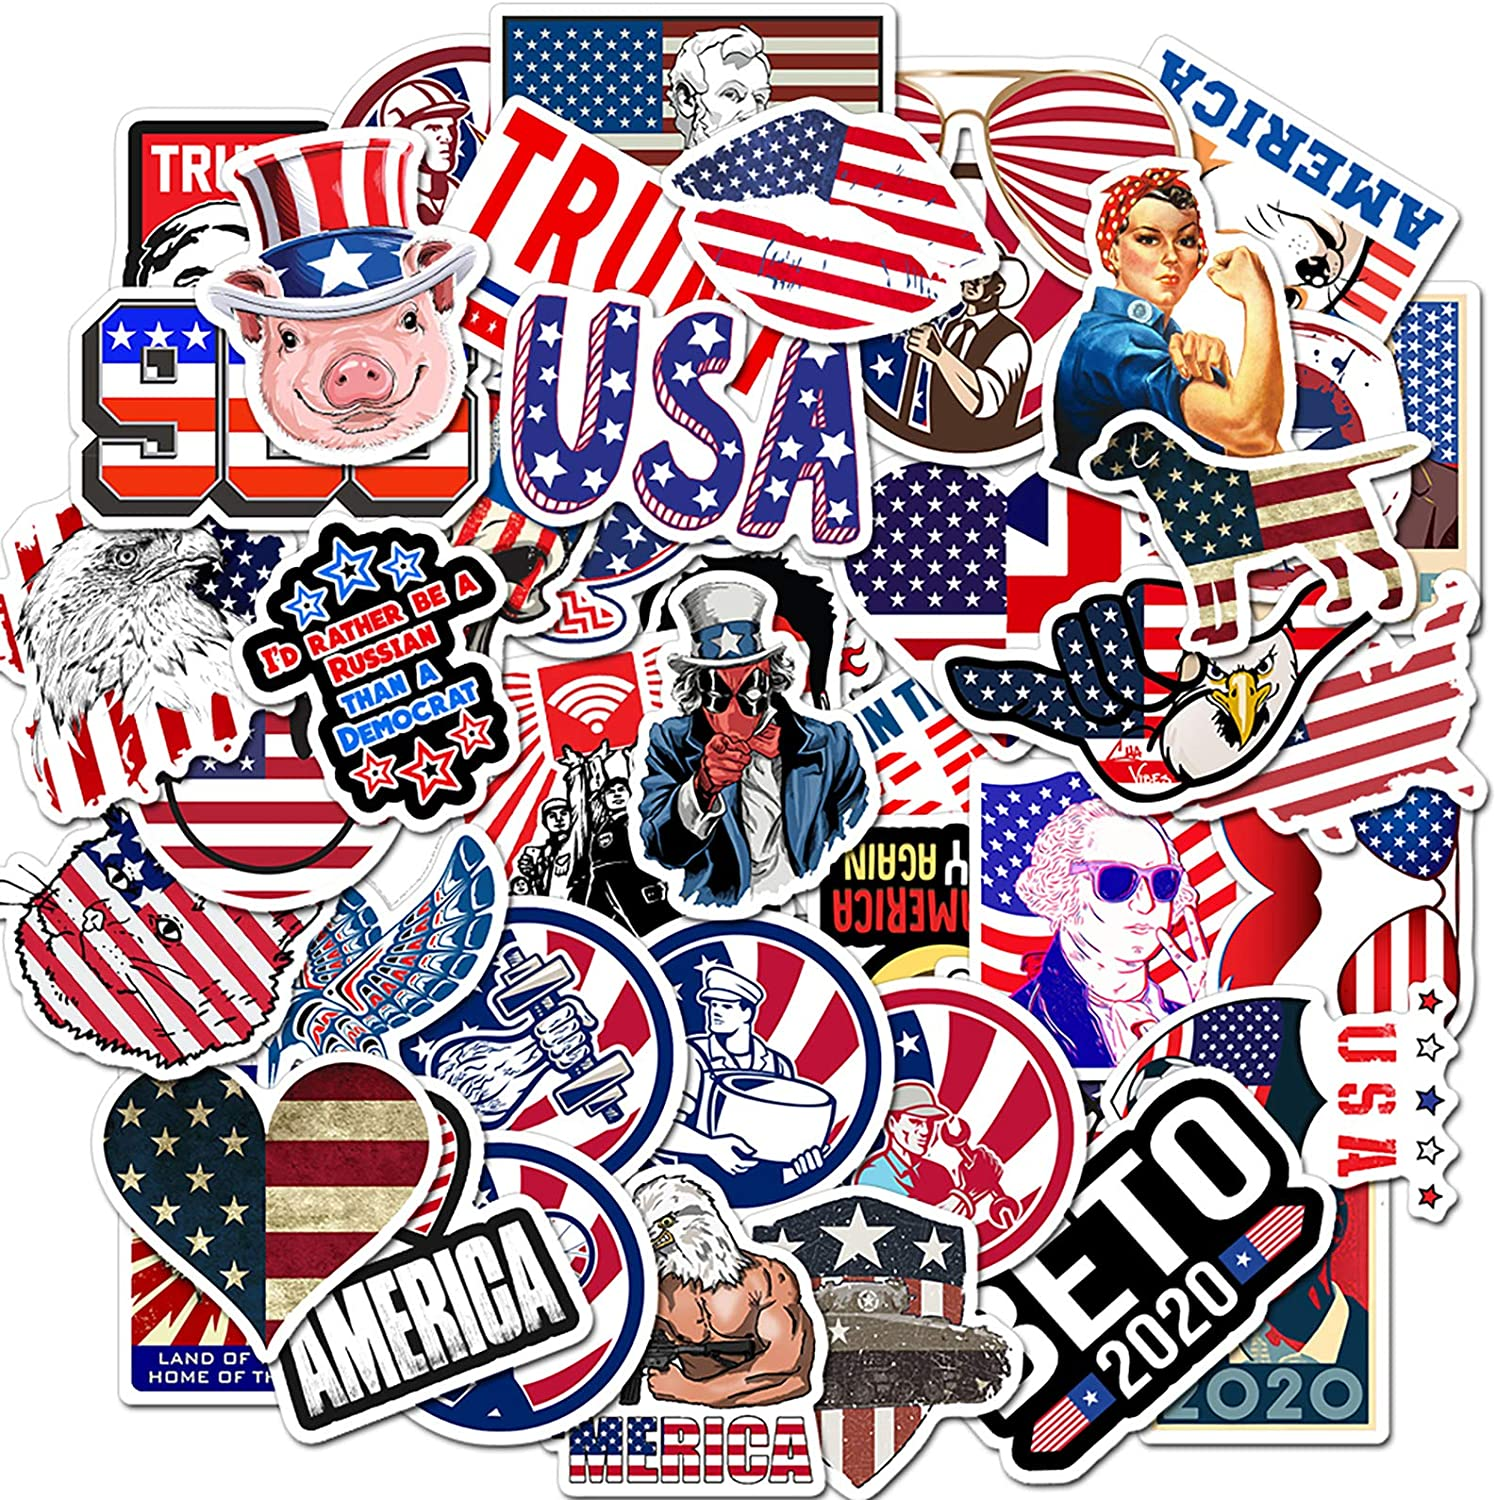 50 Pcs American Stickers Independence Day Decals for Water Bottle Hydro Flask Laptop Luggage Car Bike Bicycle Waterproof Vinyl Stickers Pack